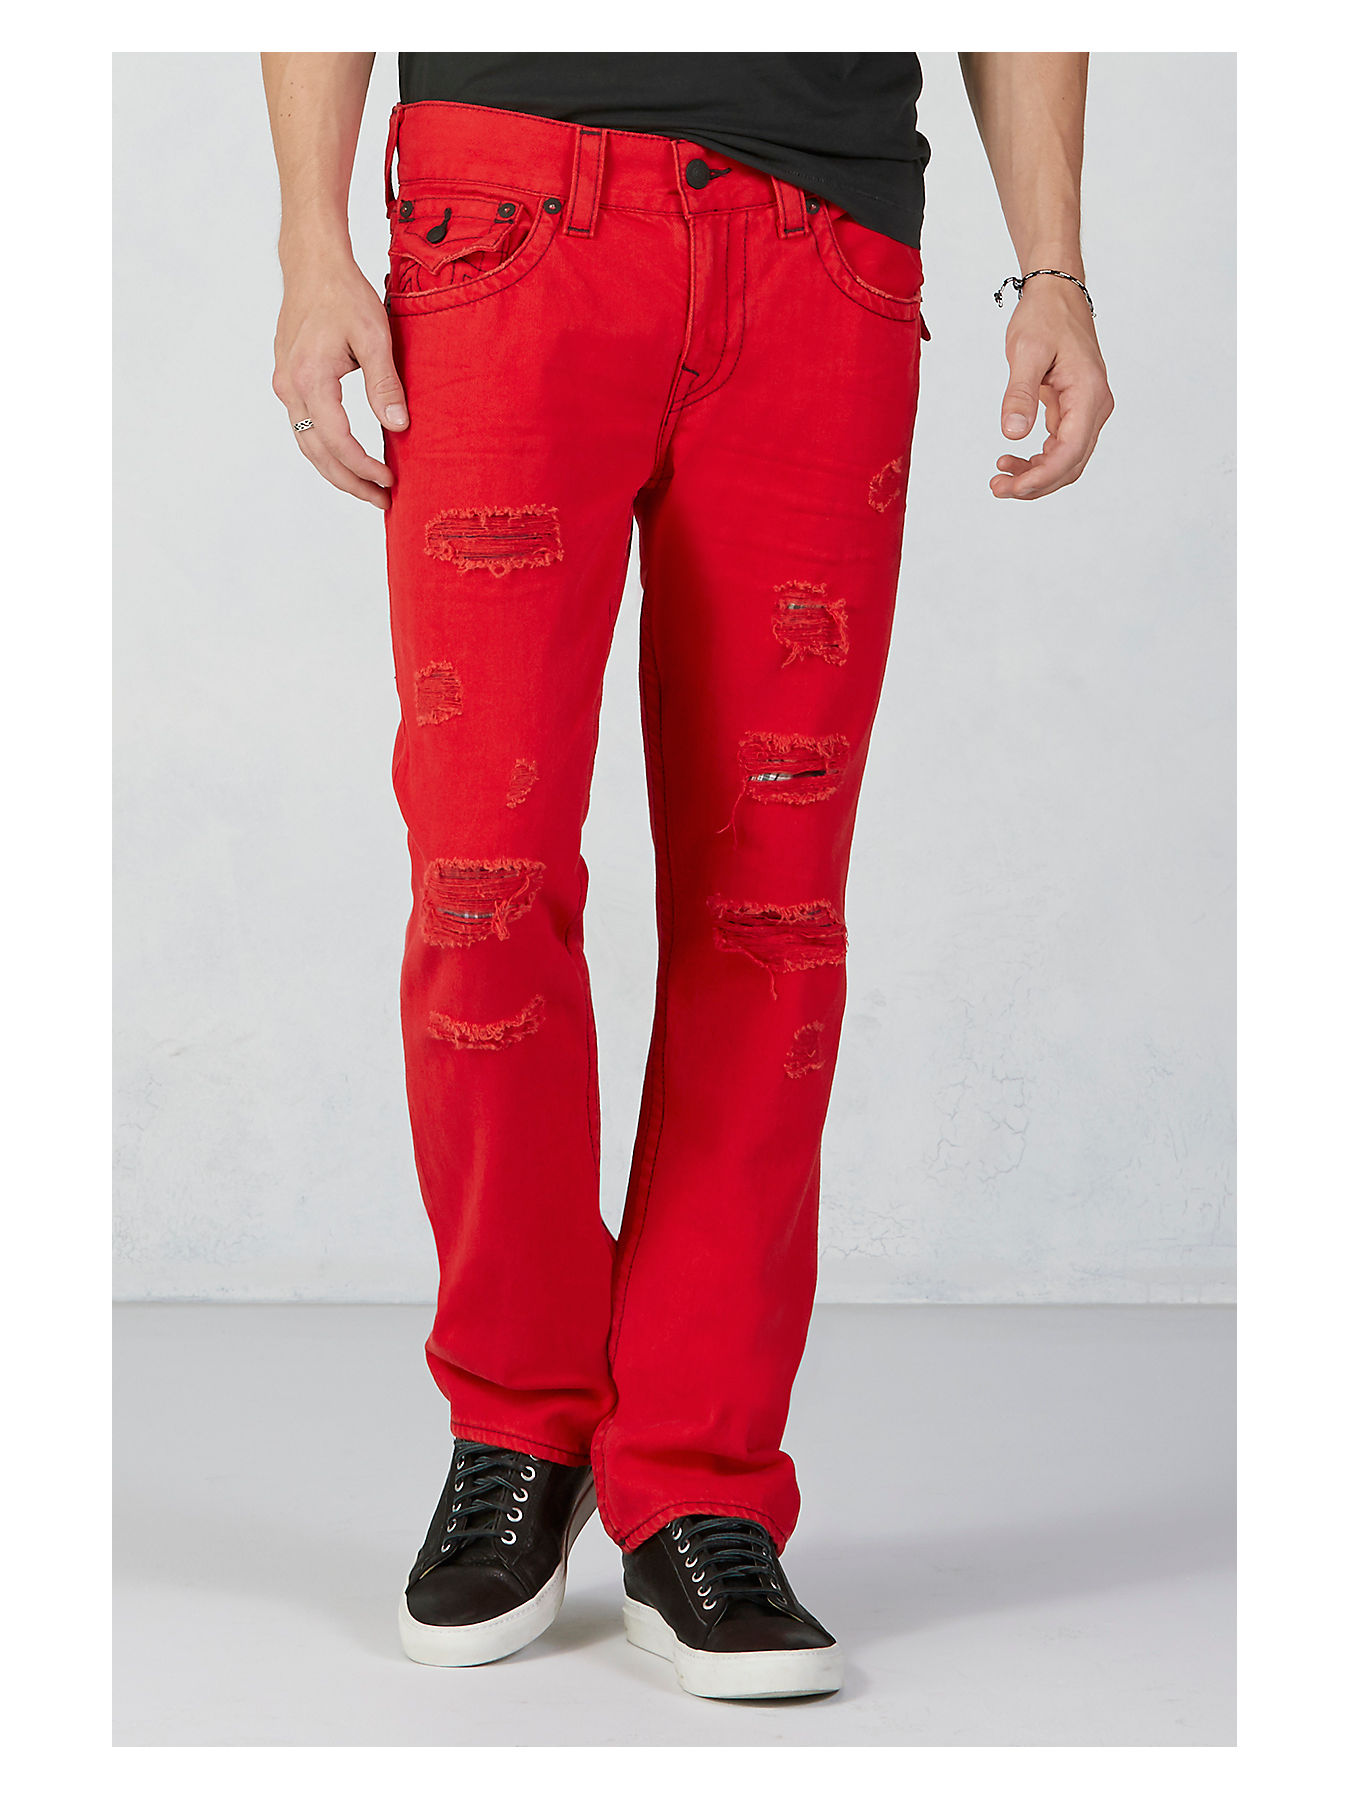 mens red jeans near me